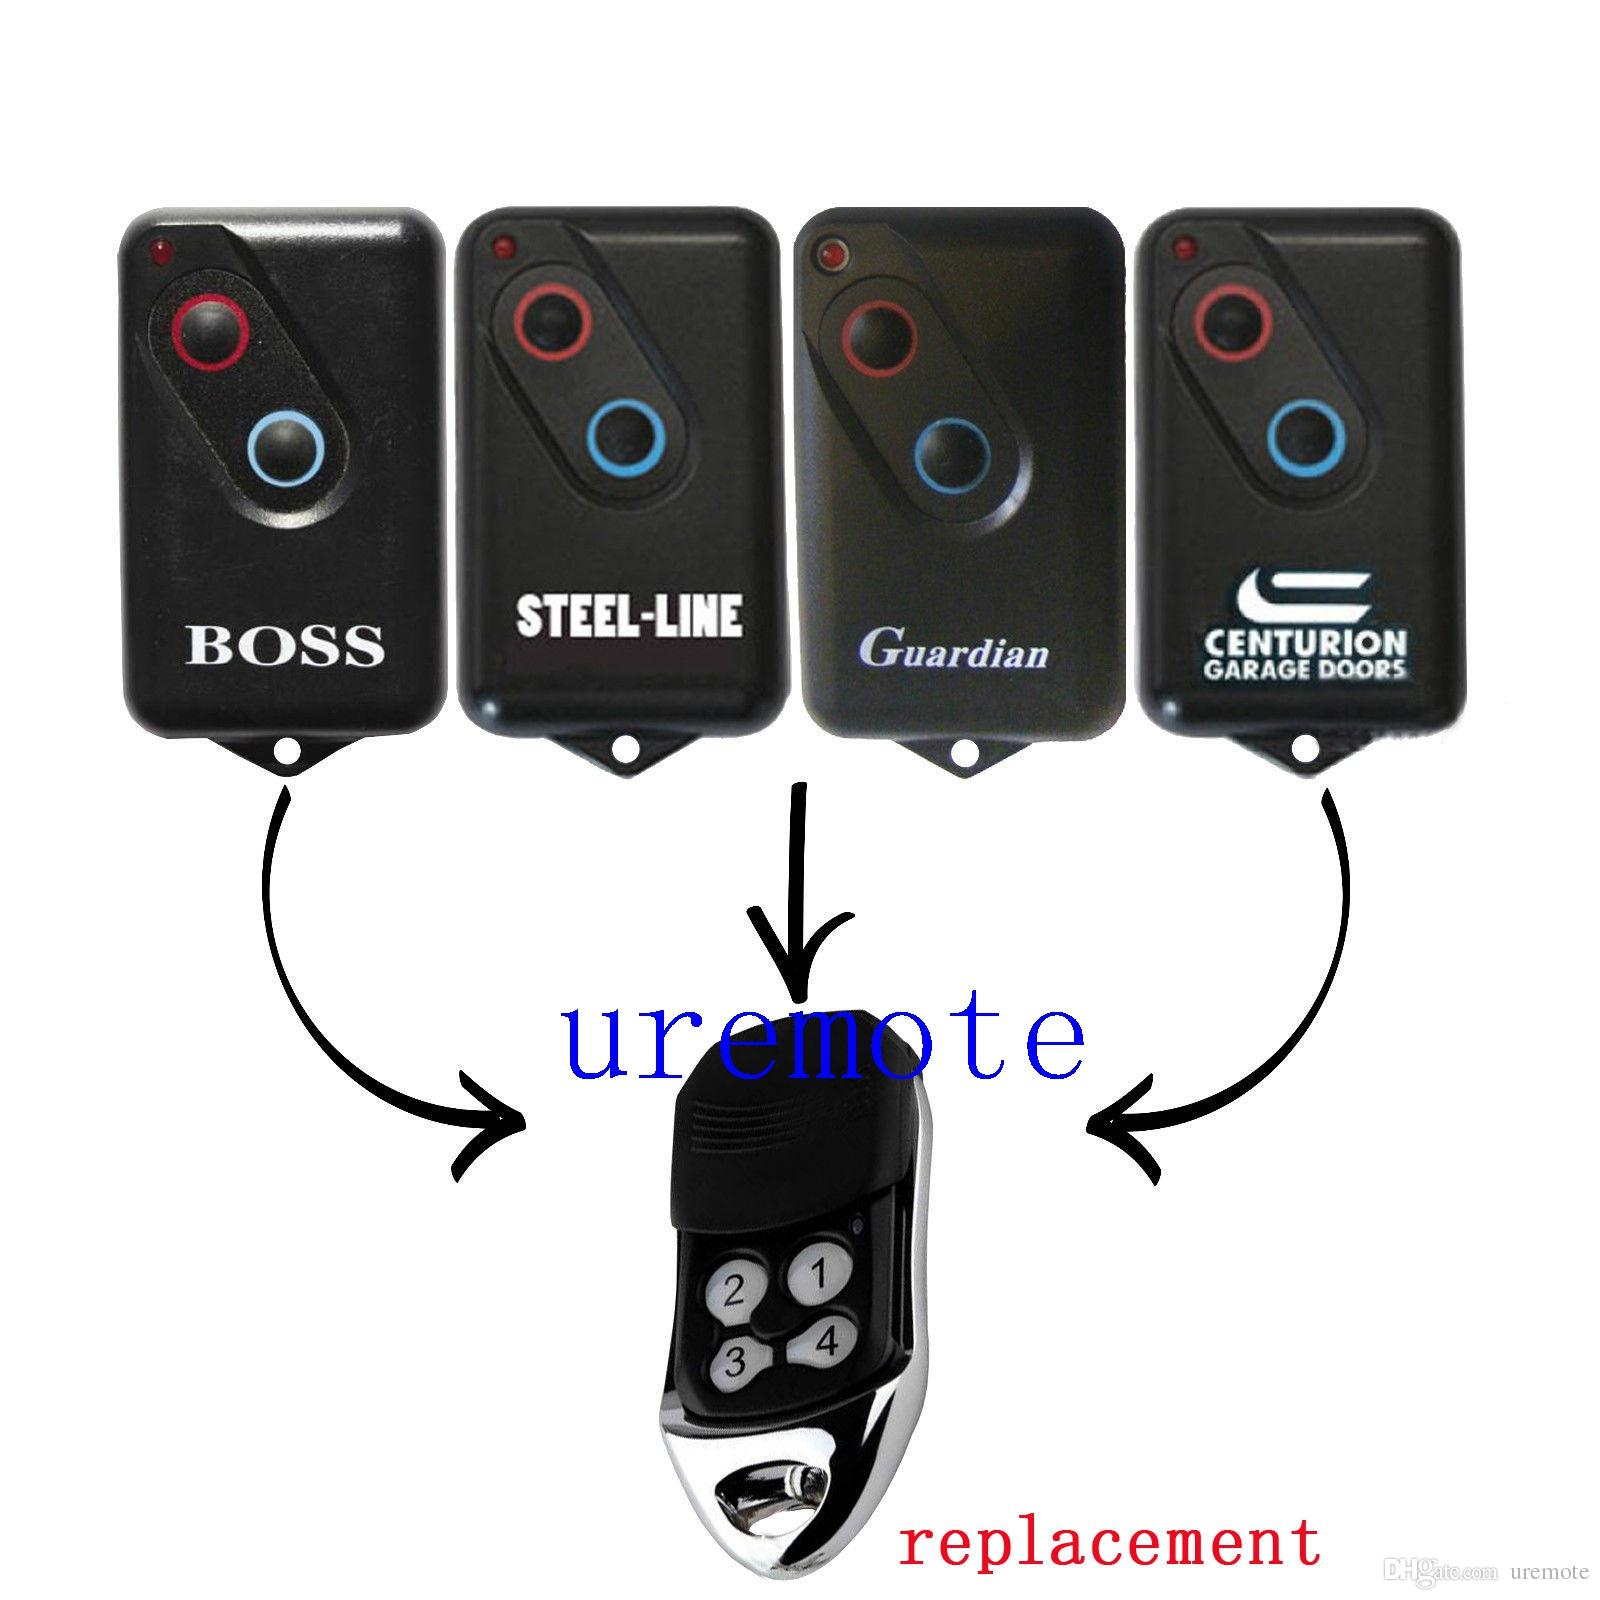 Boss Guardian Steelline Remote Replacement 2211l Bht4/Bol4/Bol6/Brd1 Garage Door Remote Buy Lock Picking Tools Buy Lock Picks From Uremote $331.66| Dhgate.  sc 1 st  DHgate.com & Boss Guardian Steelline Remote Replacement 2211l Bht4/Bol4/Bol6/Brd1 ...